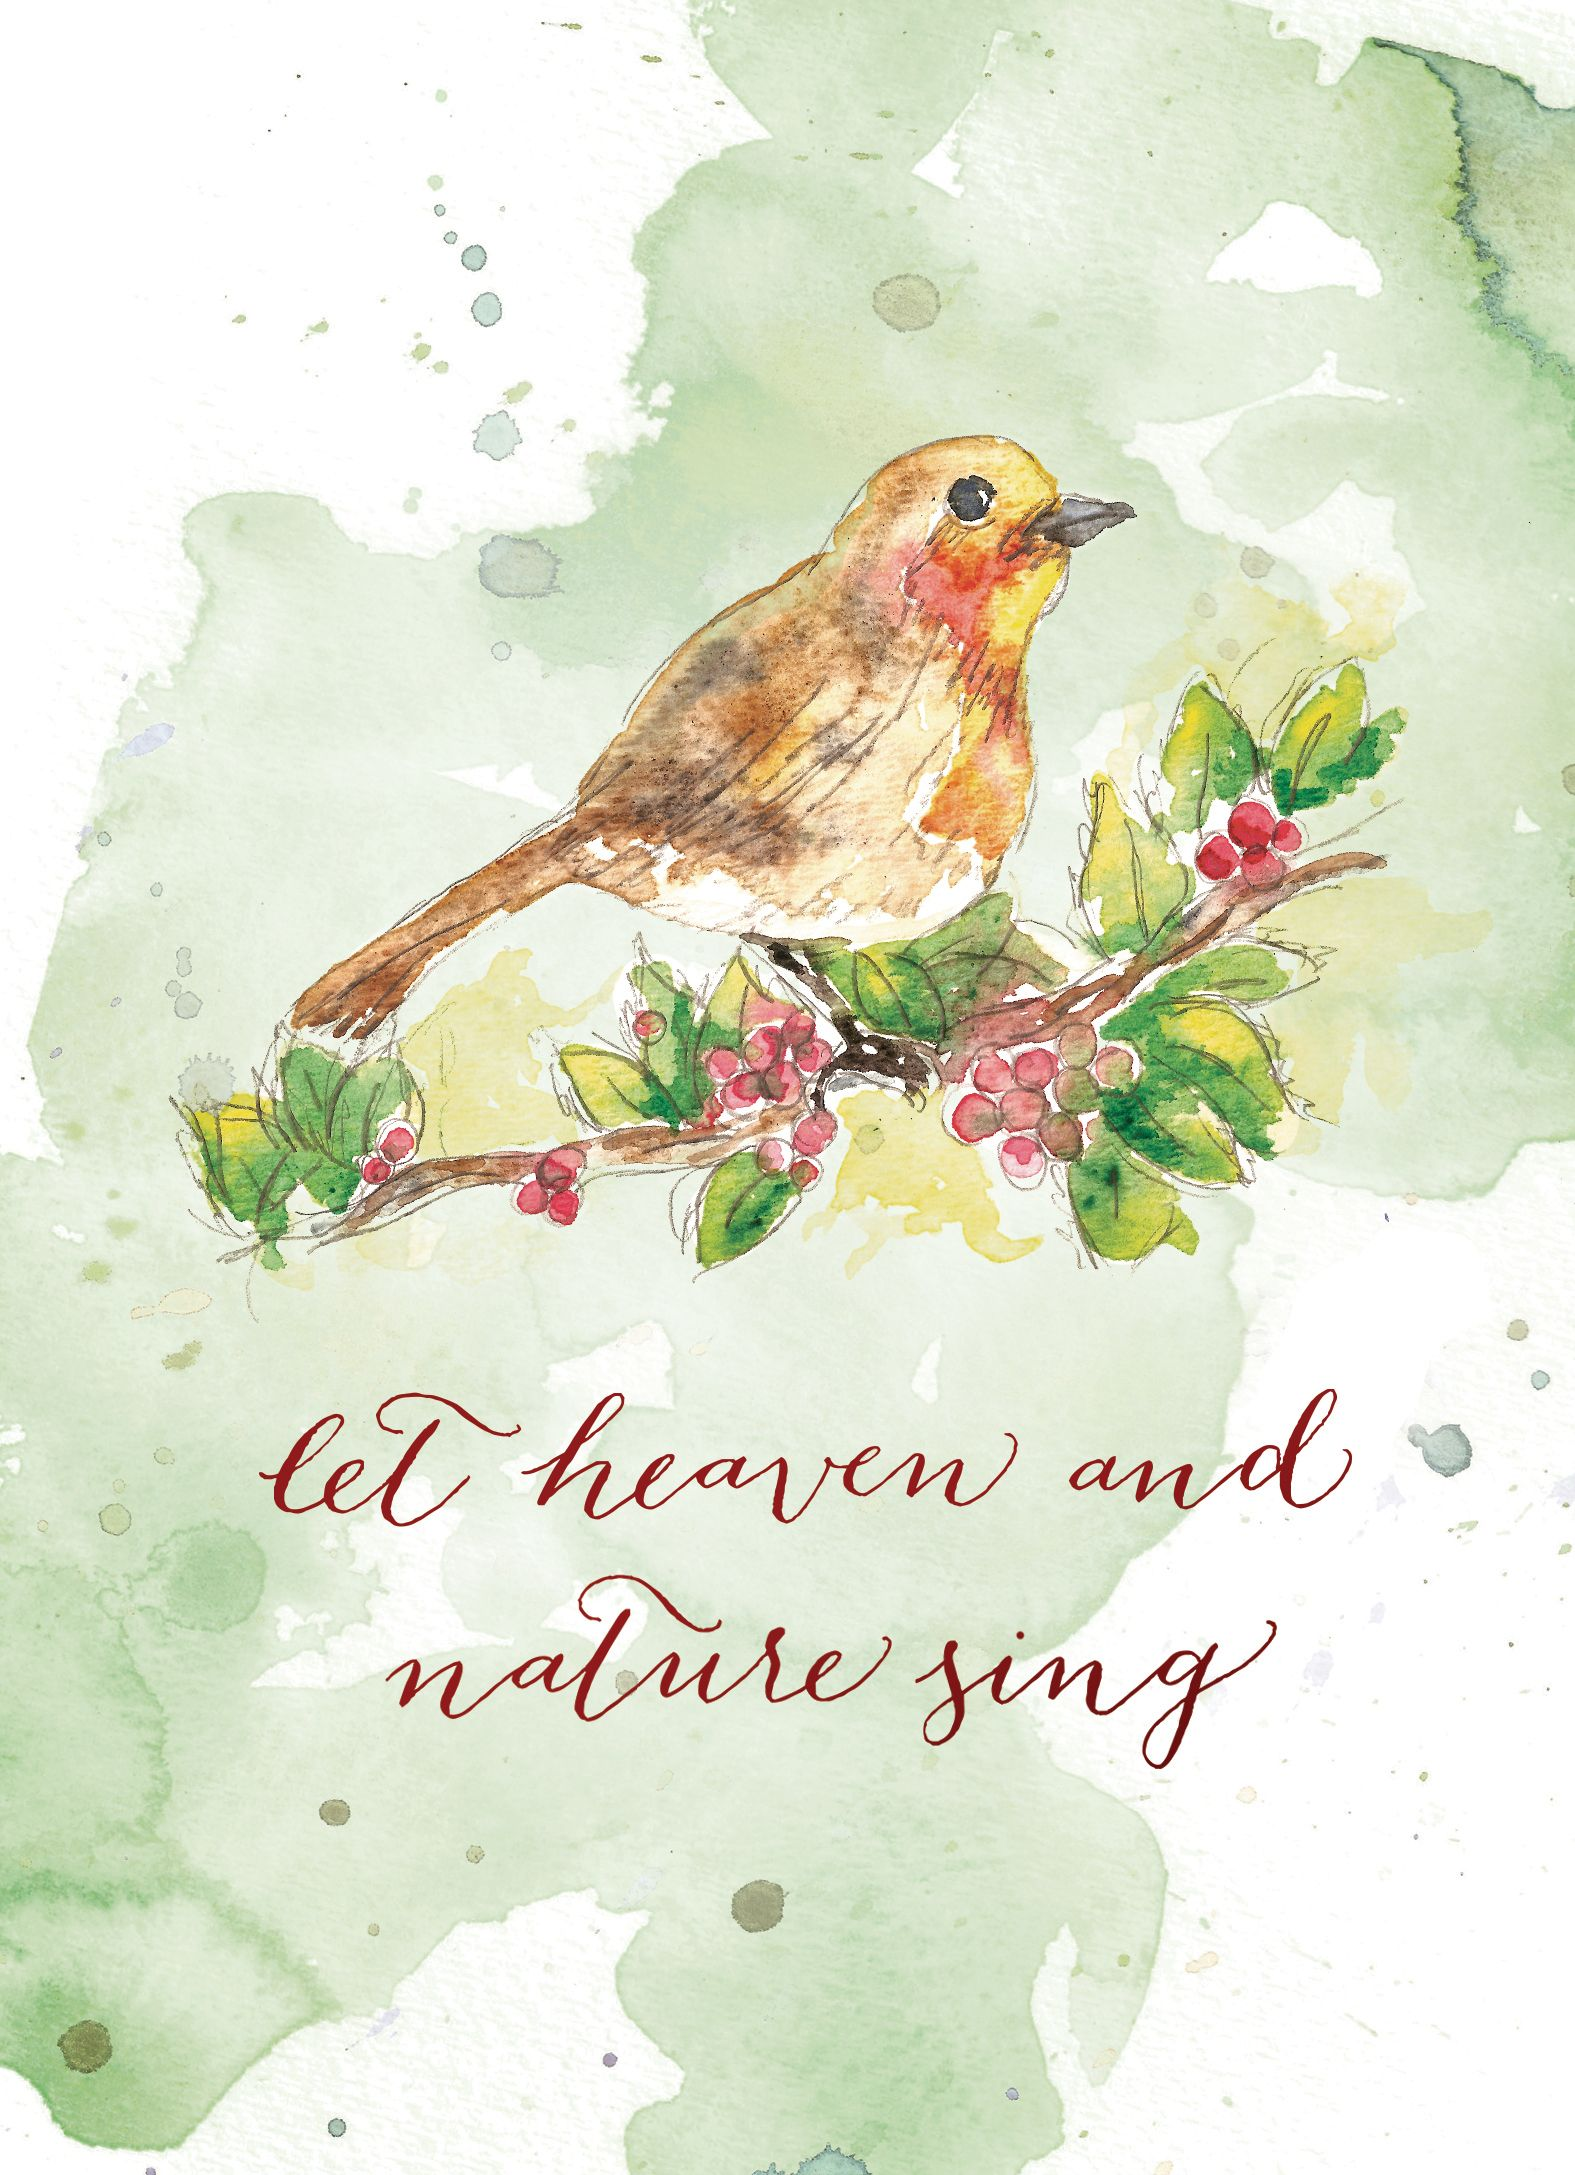 Heaven and Nature Sing: hand drawn art by Hillary Barnard Owen. Proceeds benefit women and children healing from abuse.